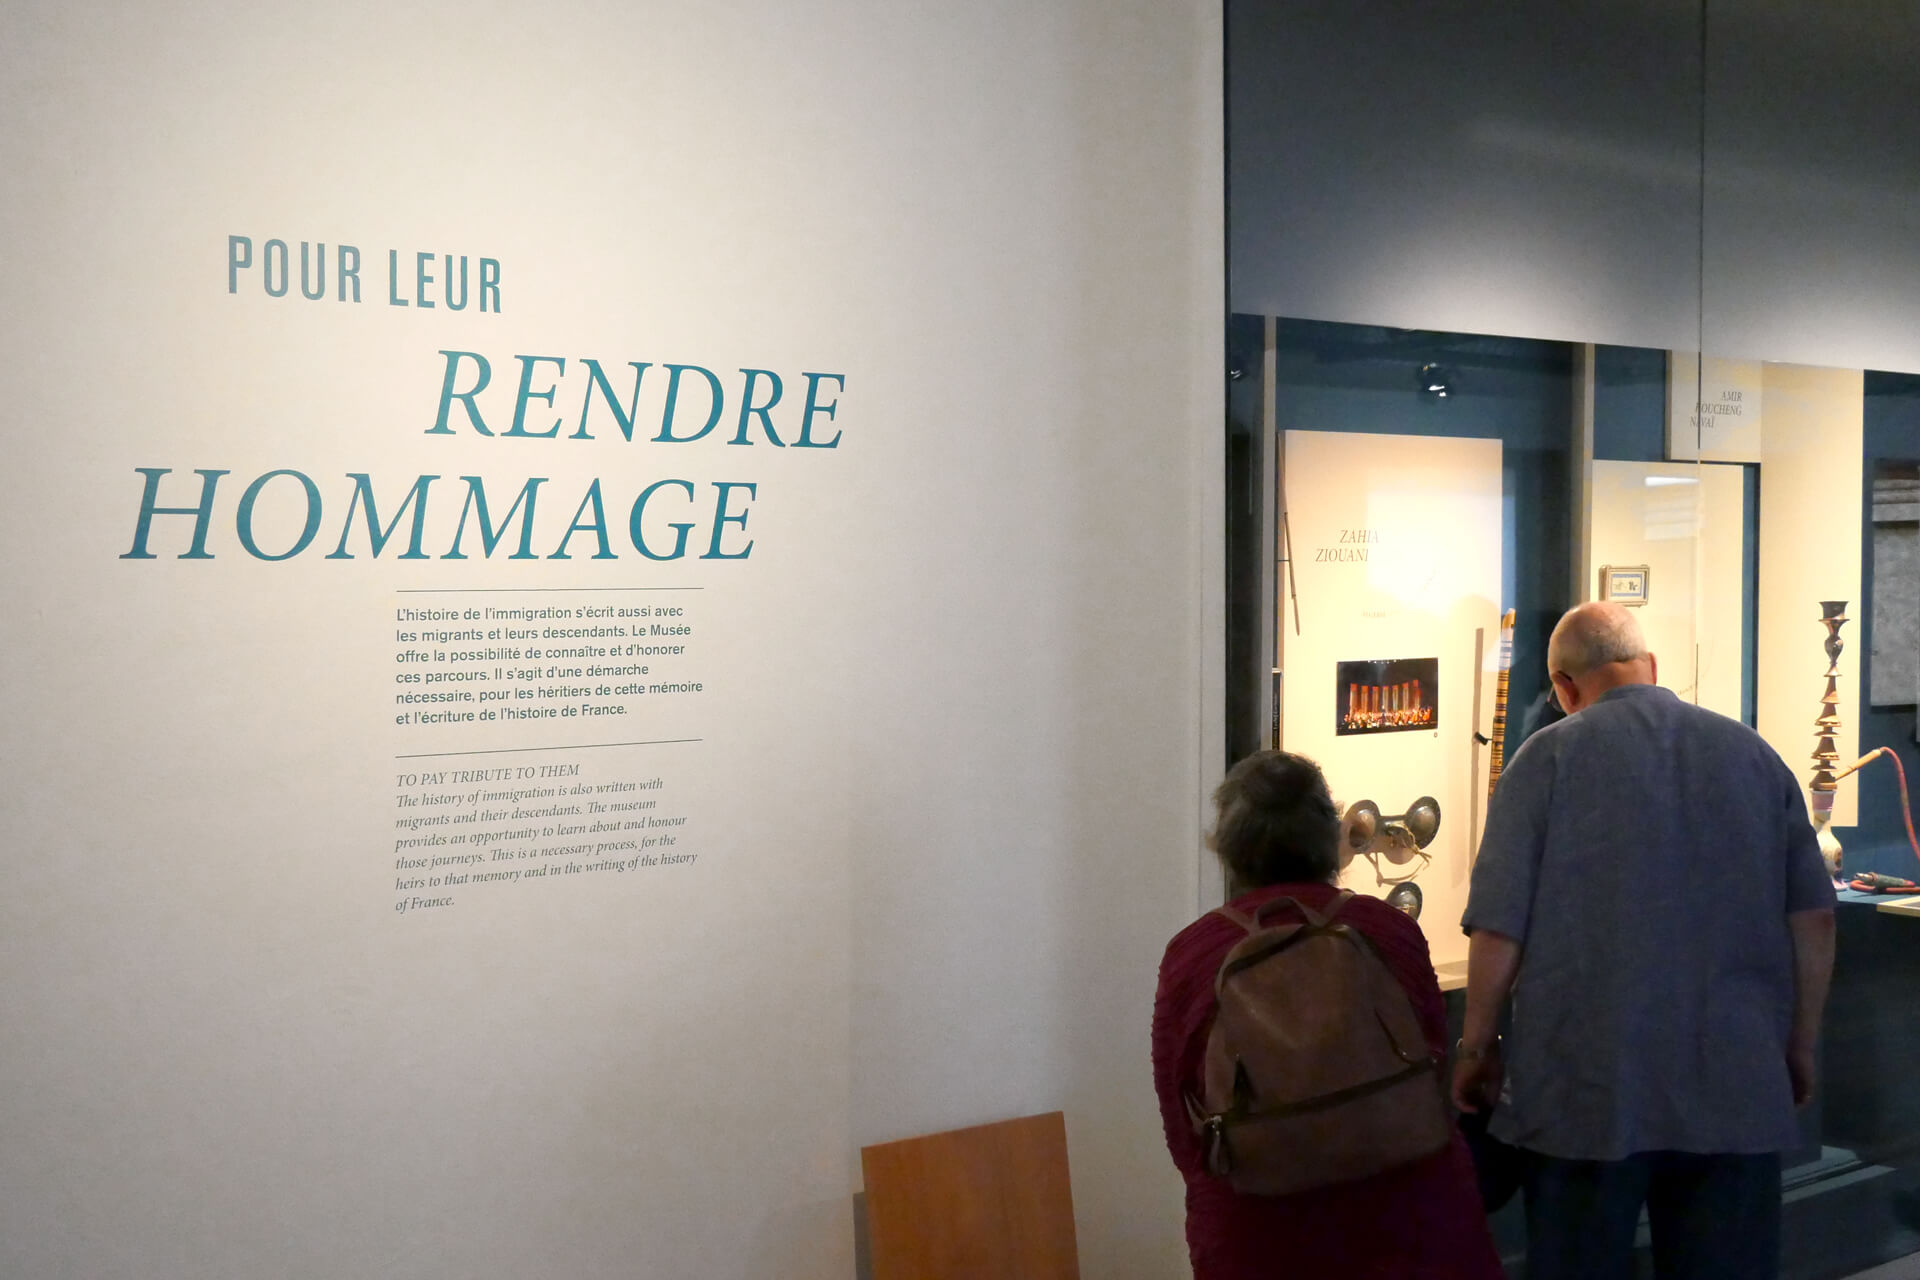 galerie-des-dons-musee-immigration-signaletique-exposition-plastac